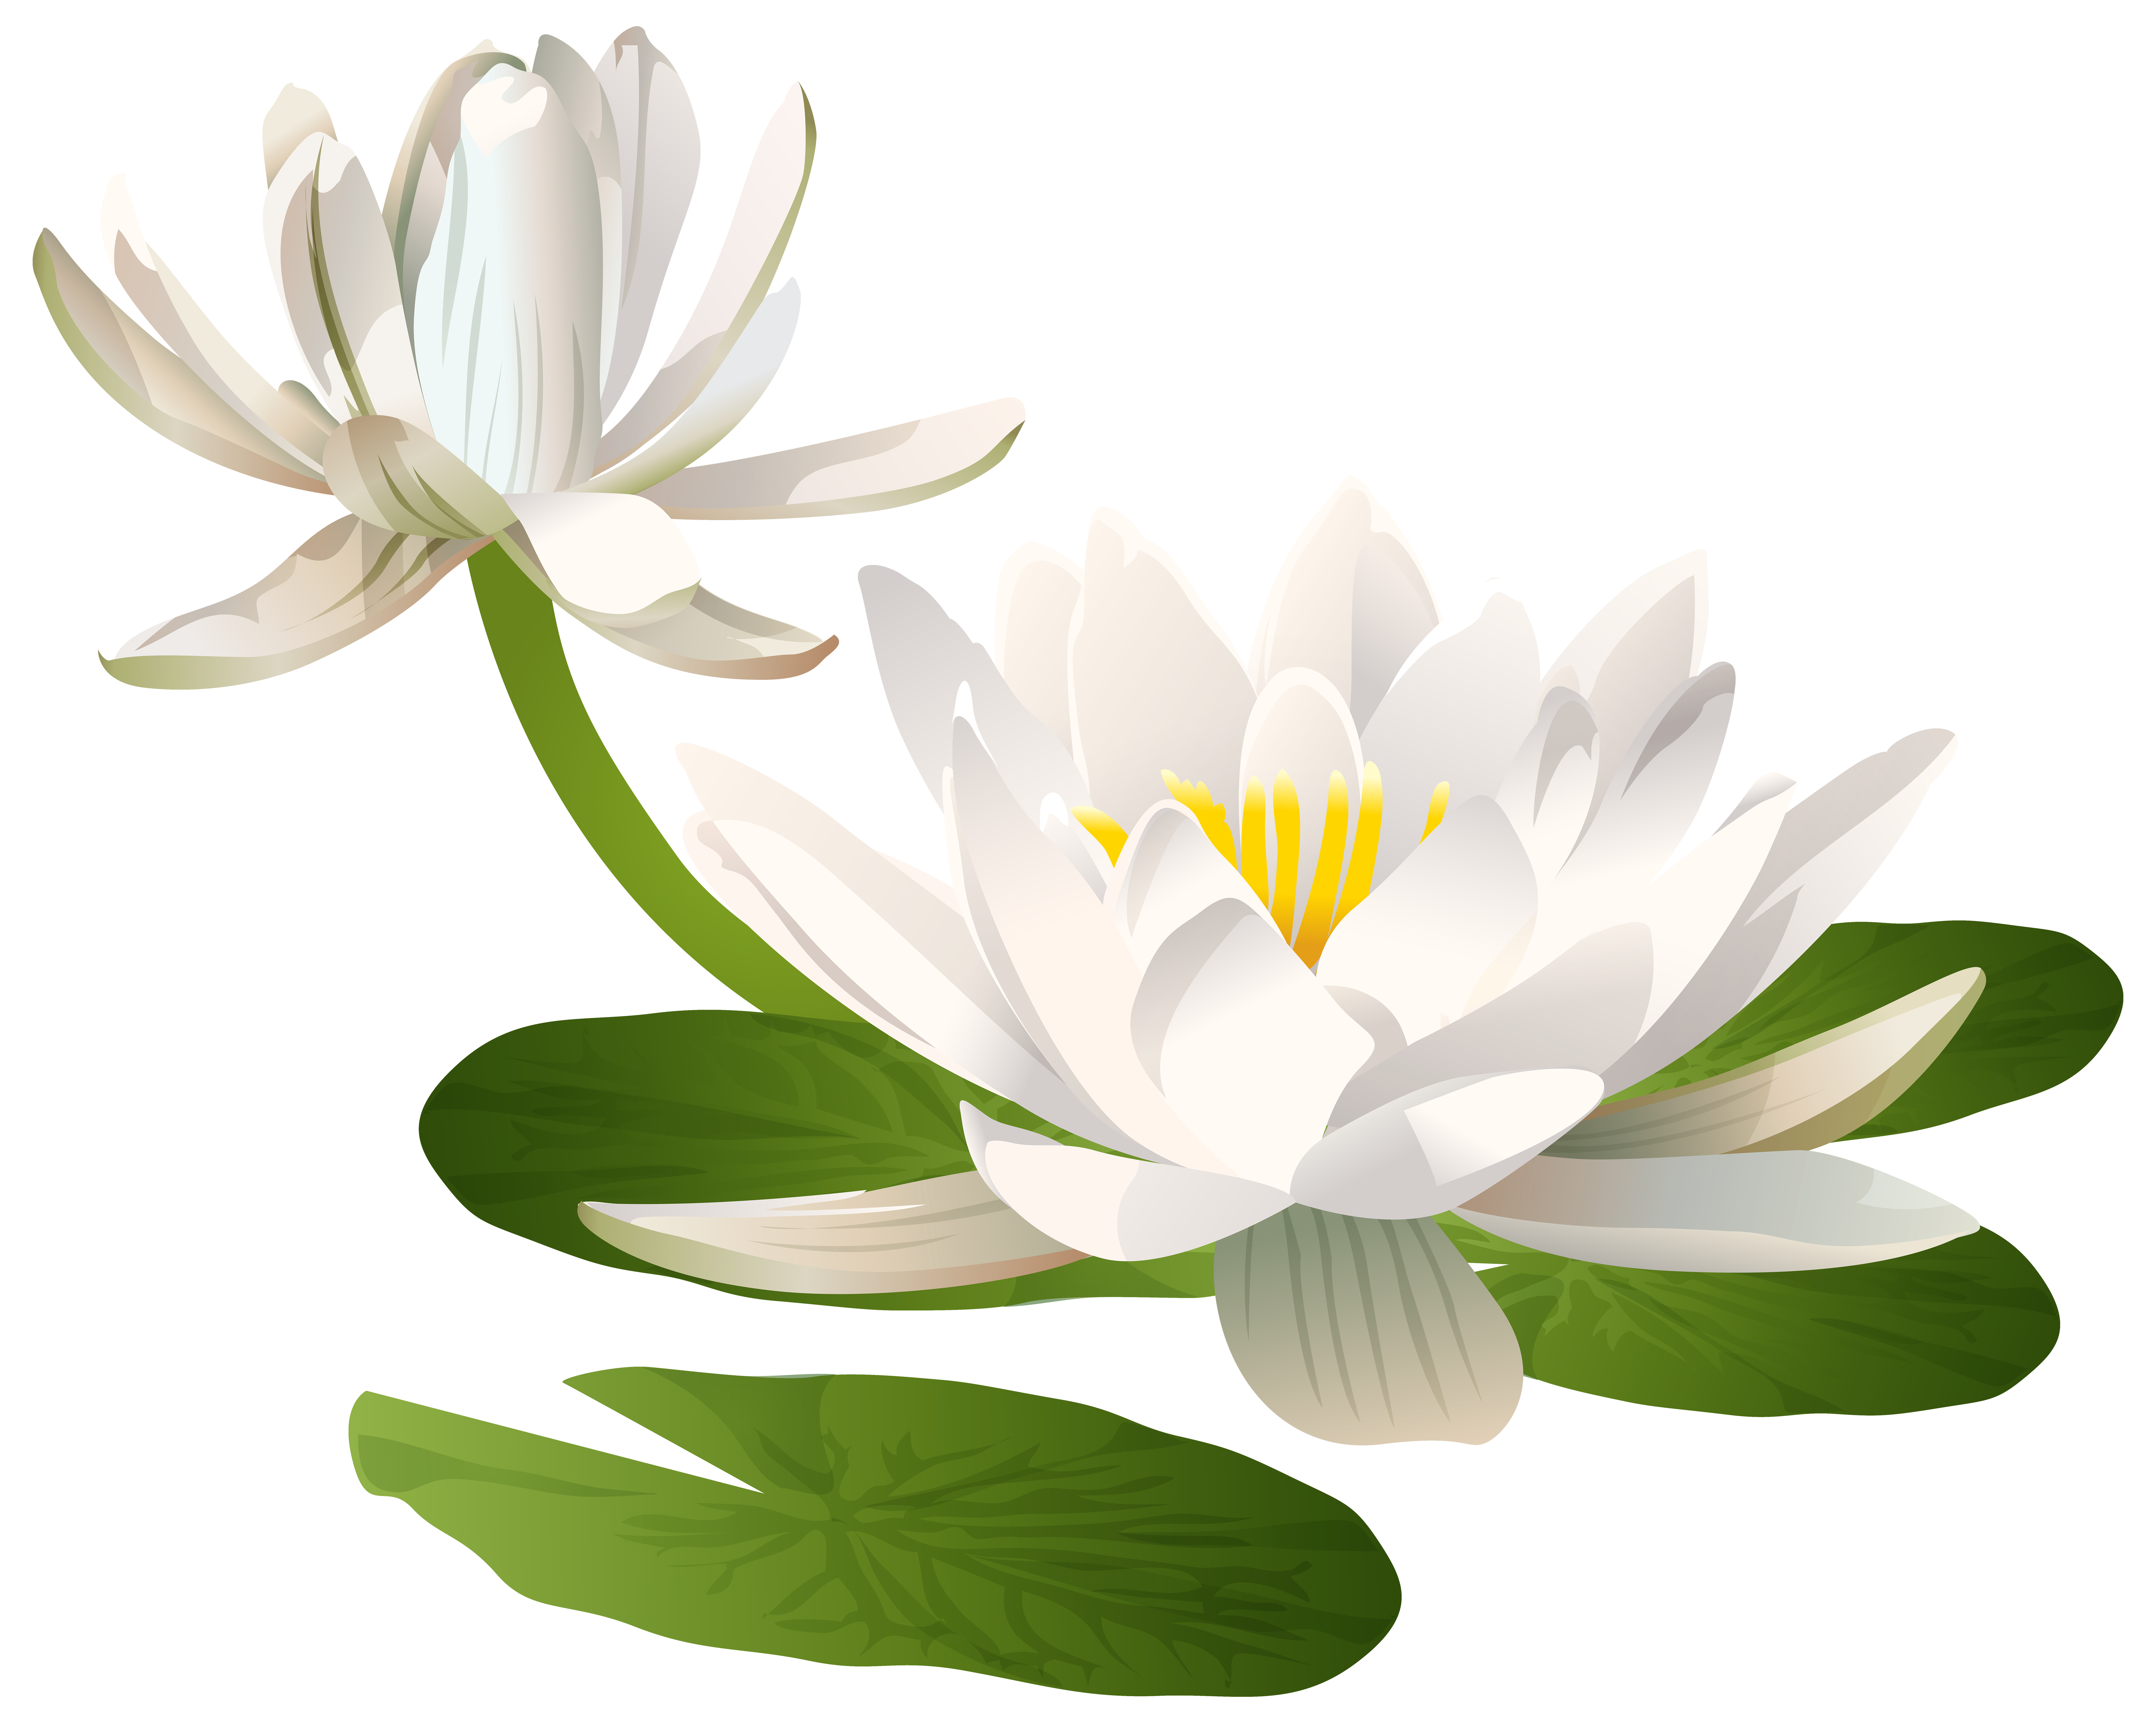 Water png clip art. Lily clipart waterlilly